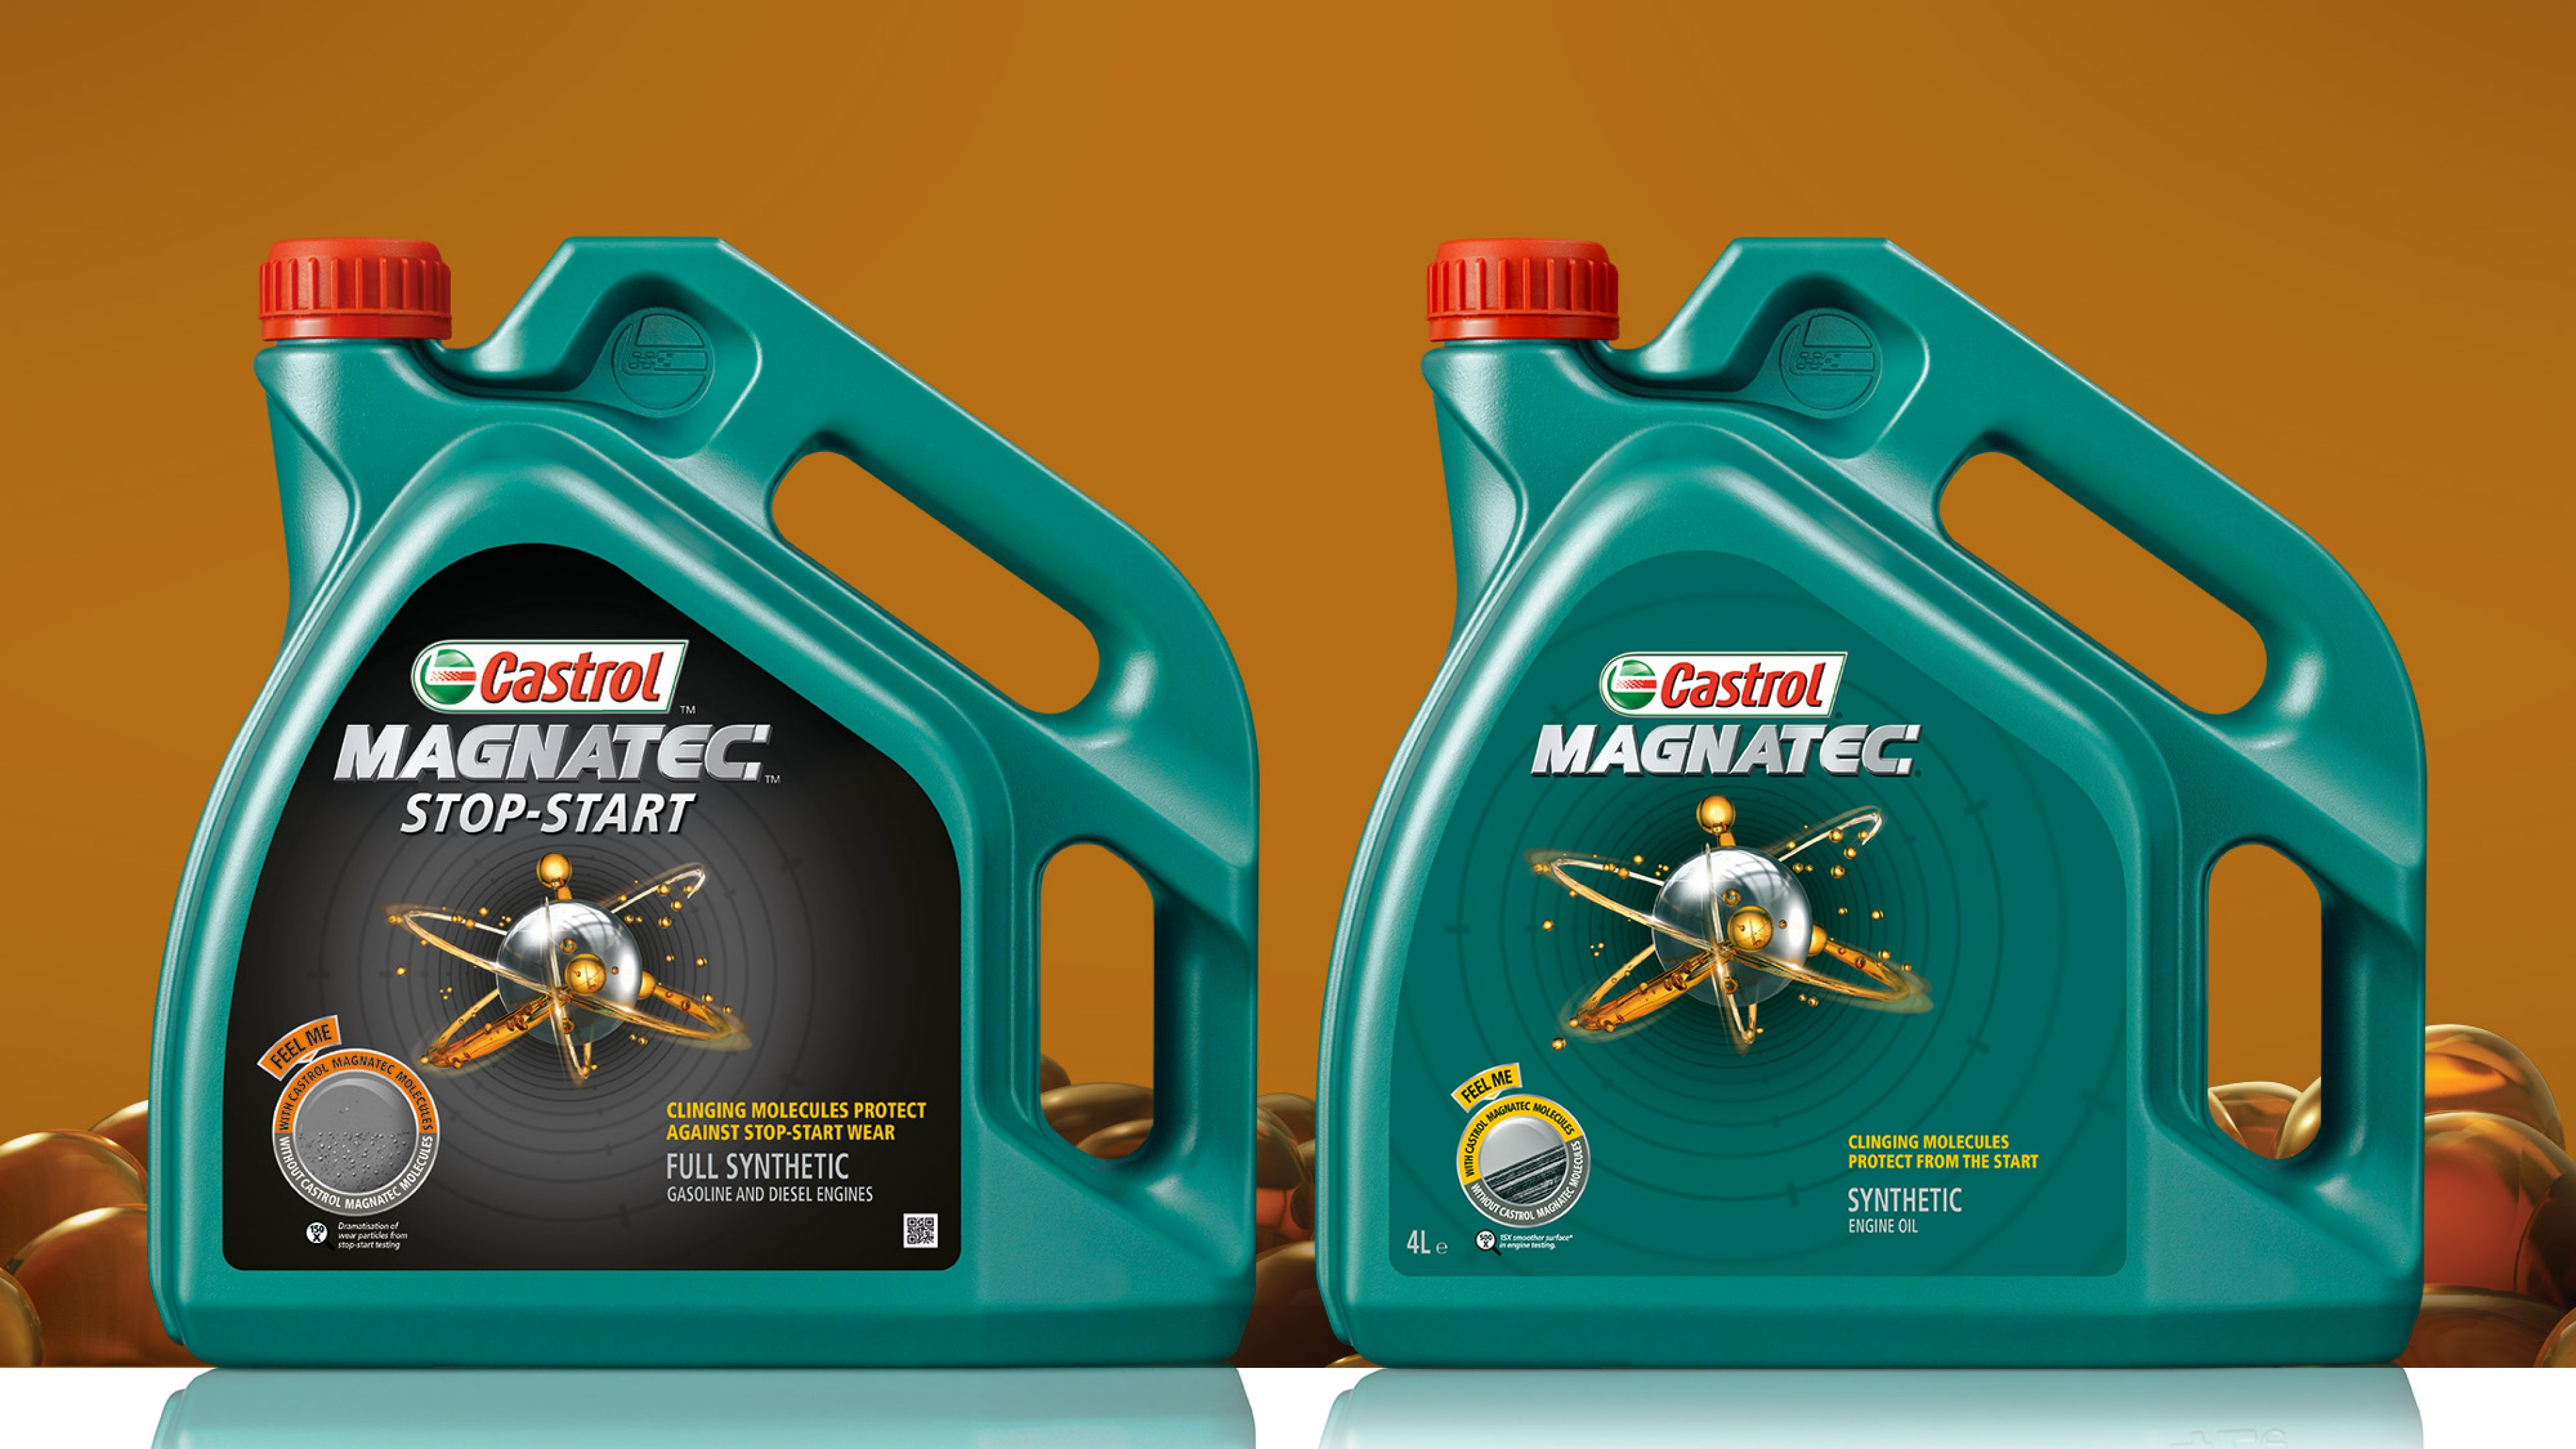 Castrol MAGNATEC Products